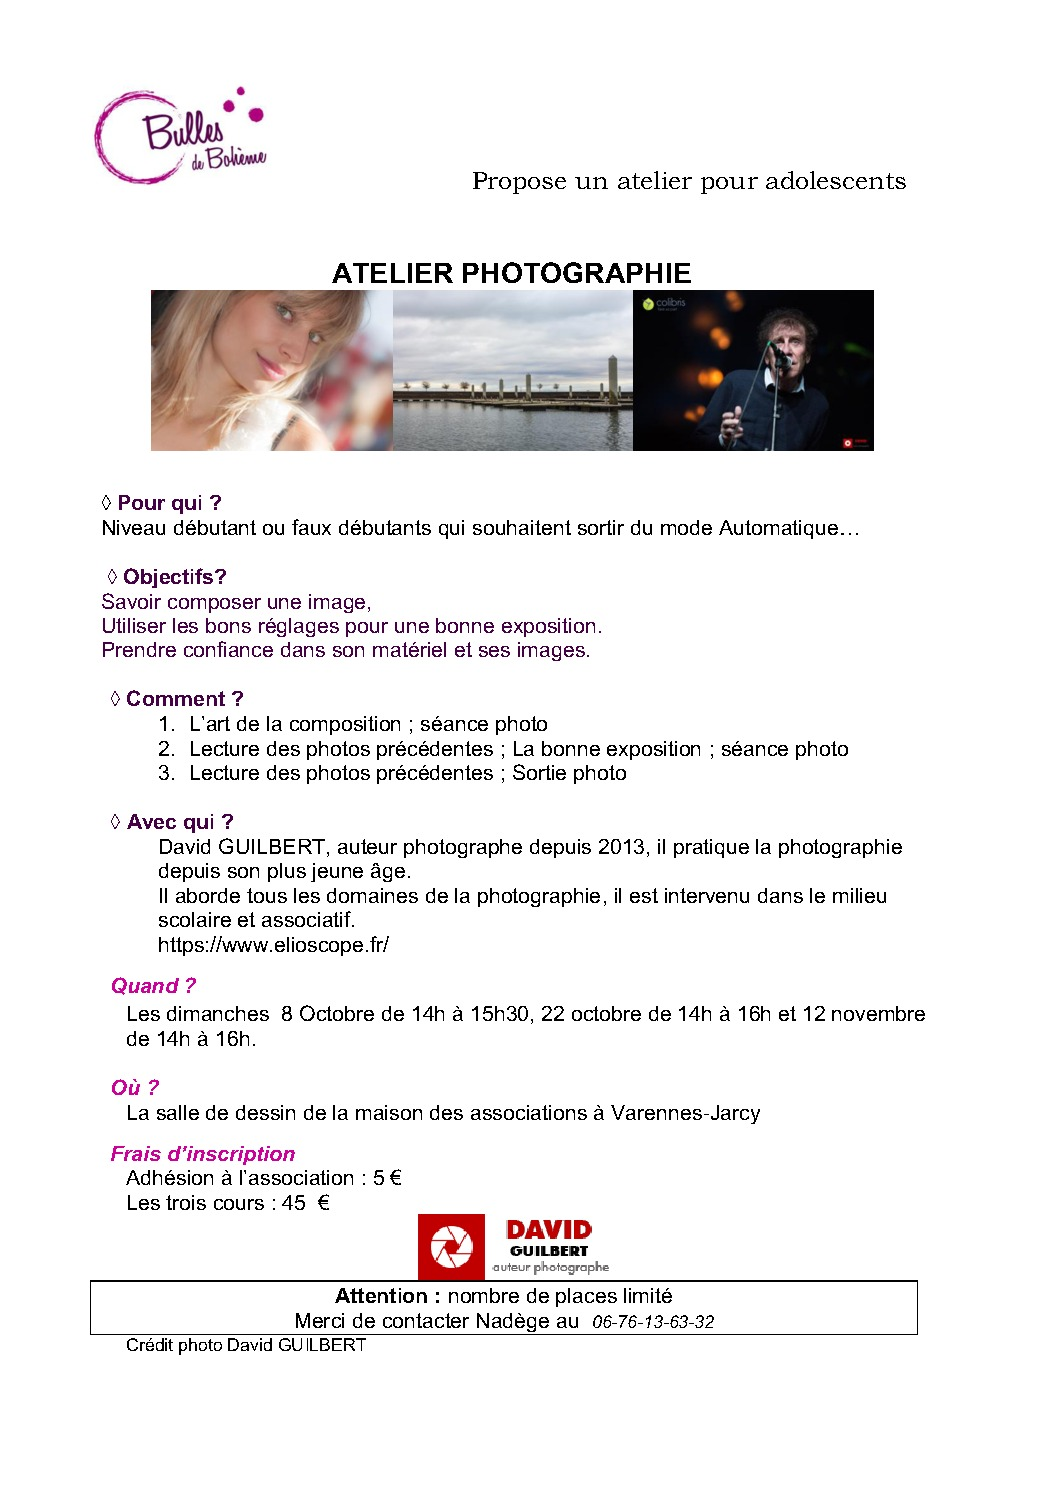 thumbnail of atelier photographie